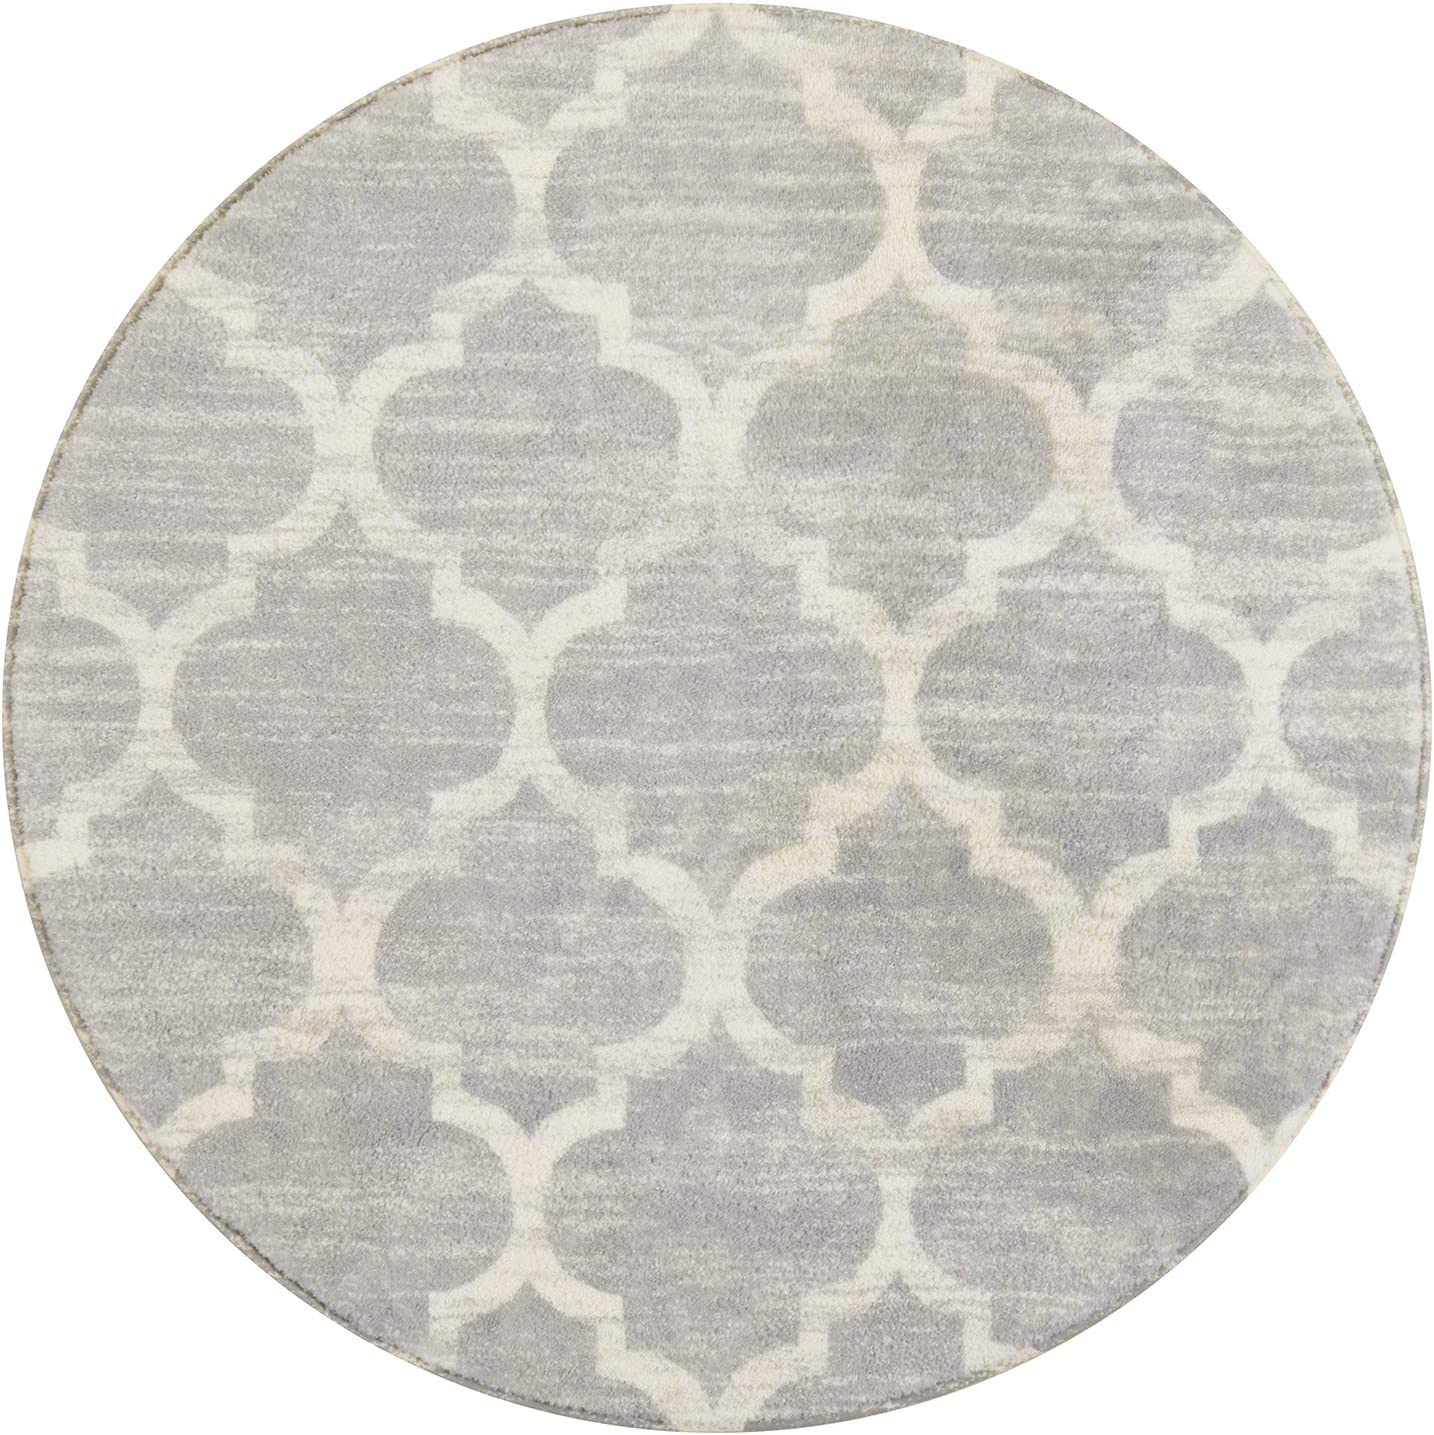 Lahome Moroccan Area Rug - 3' Diameter Faux Wool Non-Slip Area Rug Small Accent Distressed Throw Rugs Floor Carpet for Door Mat Entryway Bedrooms Laundry Room Decor (Round - 3' Diameter, Gray)